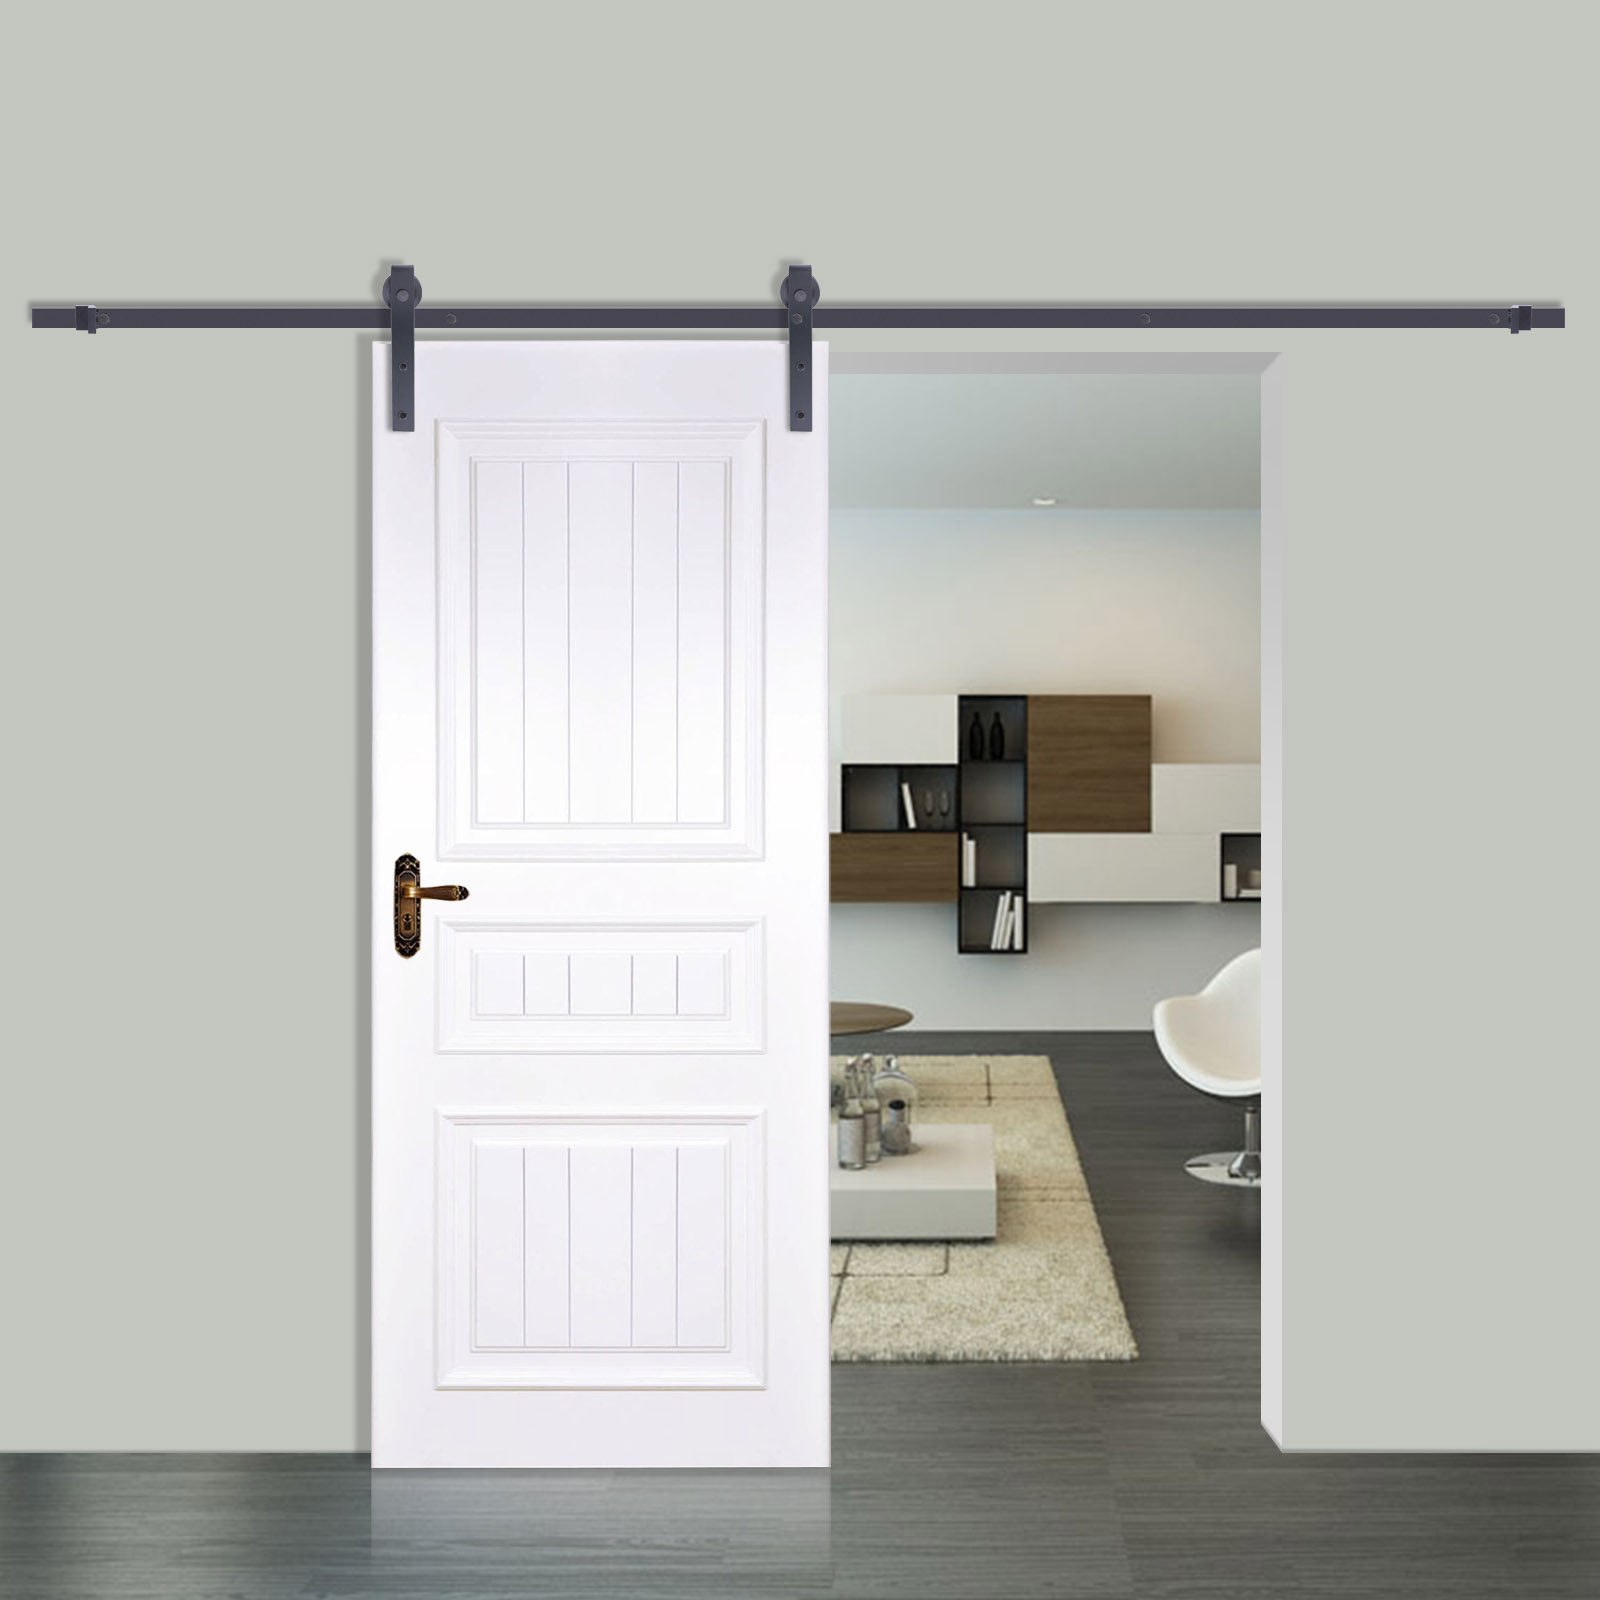 6 6 6 10 12ft rustic black double sliding barn door for Double sliding doors